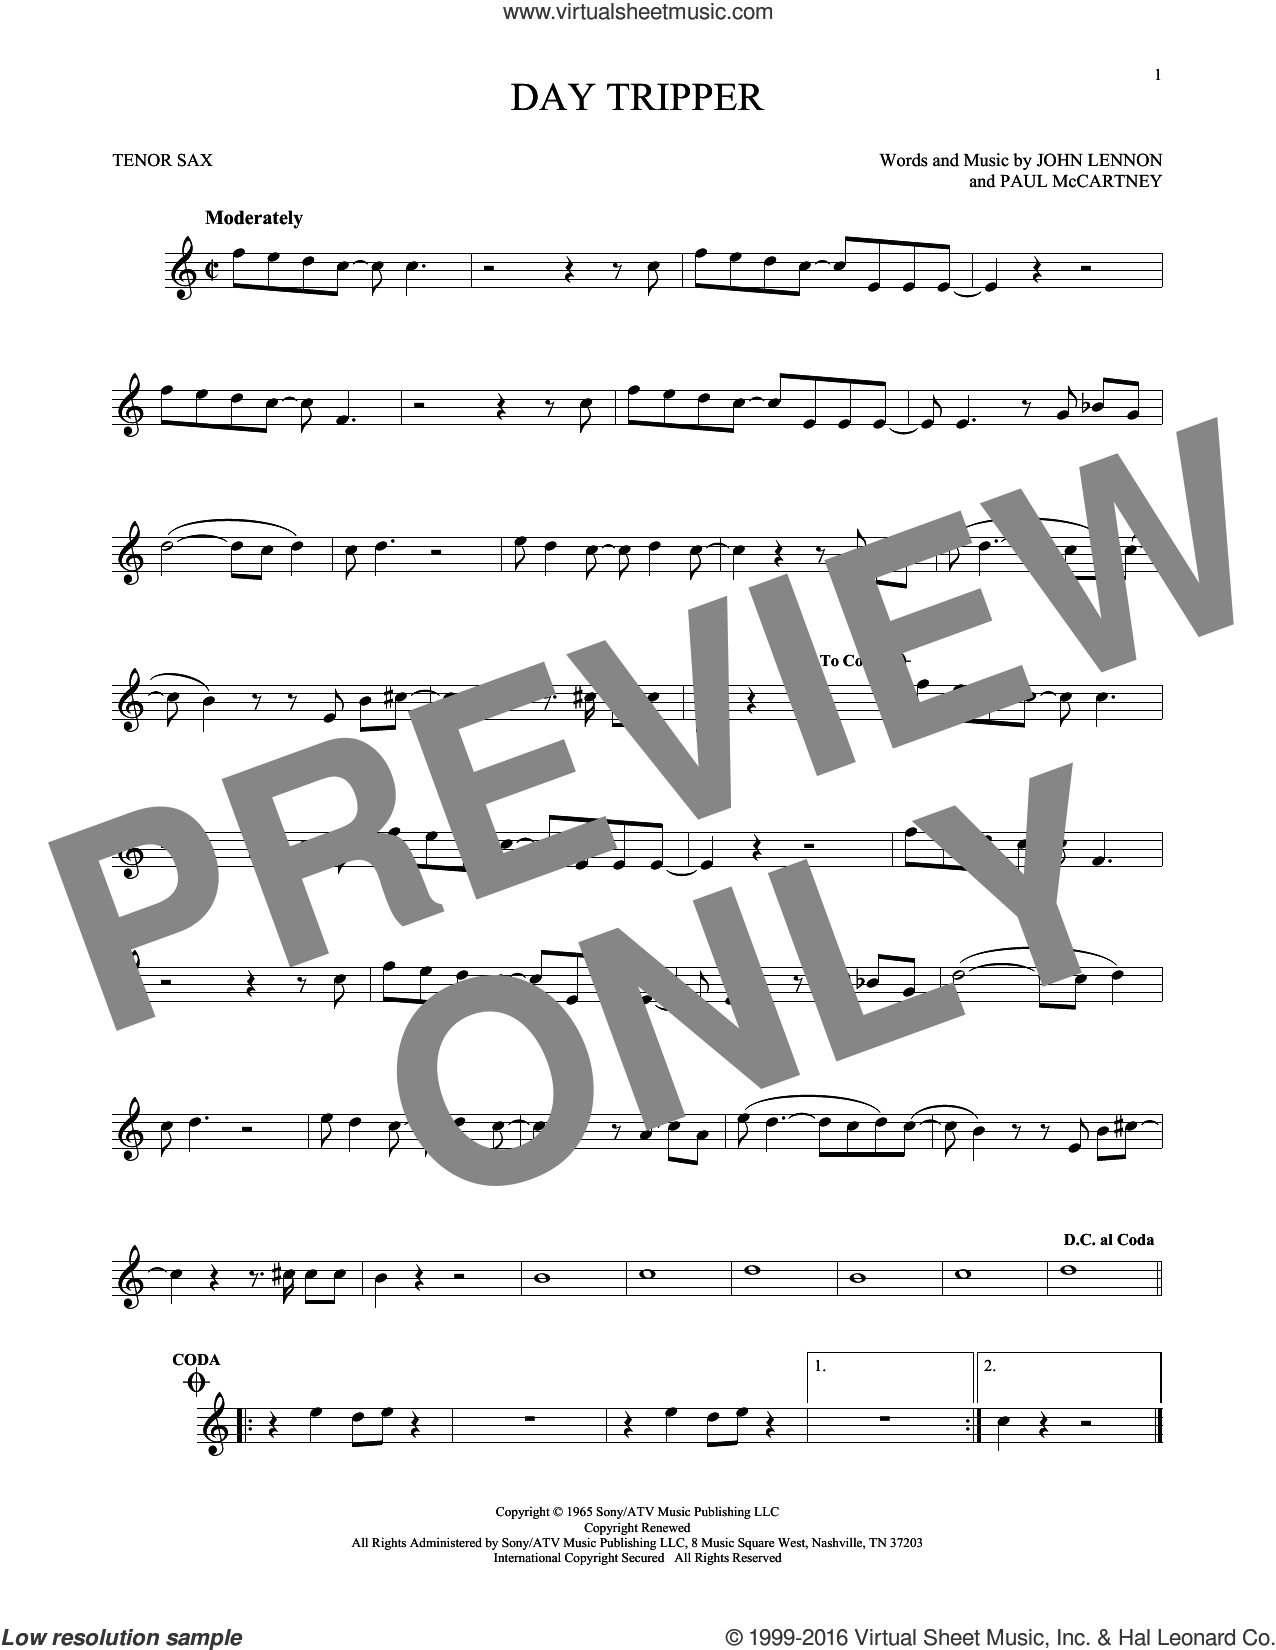 Day Tripper sheet music for tenor saxophone solo by The Beatles, John Lennon and Paul McCartney, intermediate